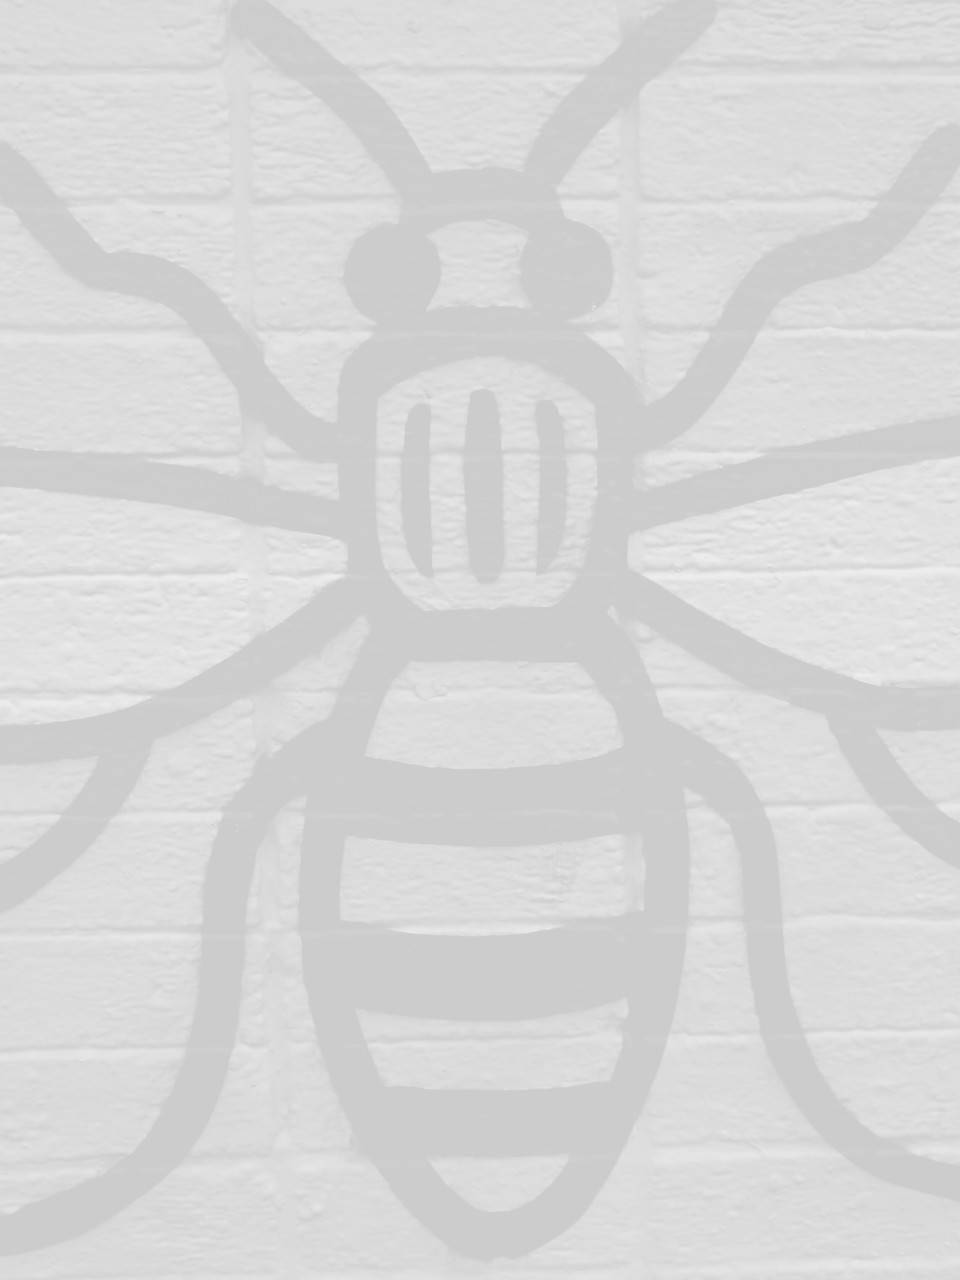 seo company in manchester image of manchester bee